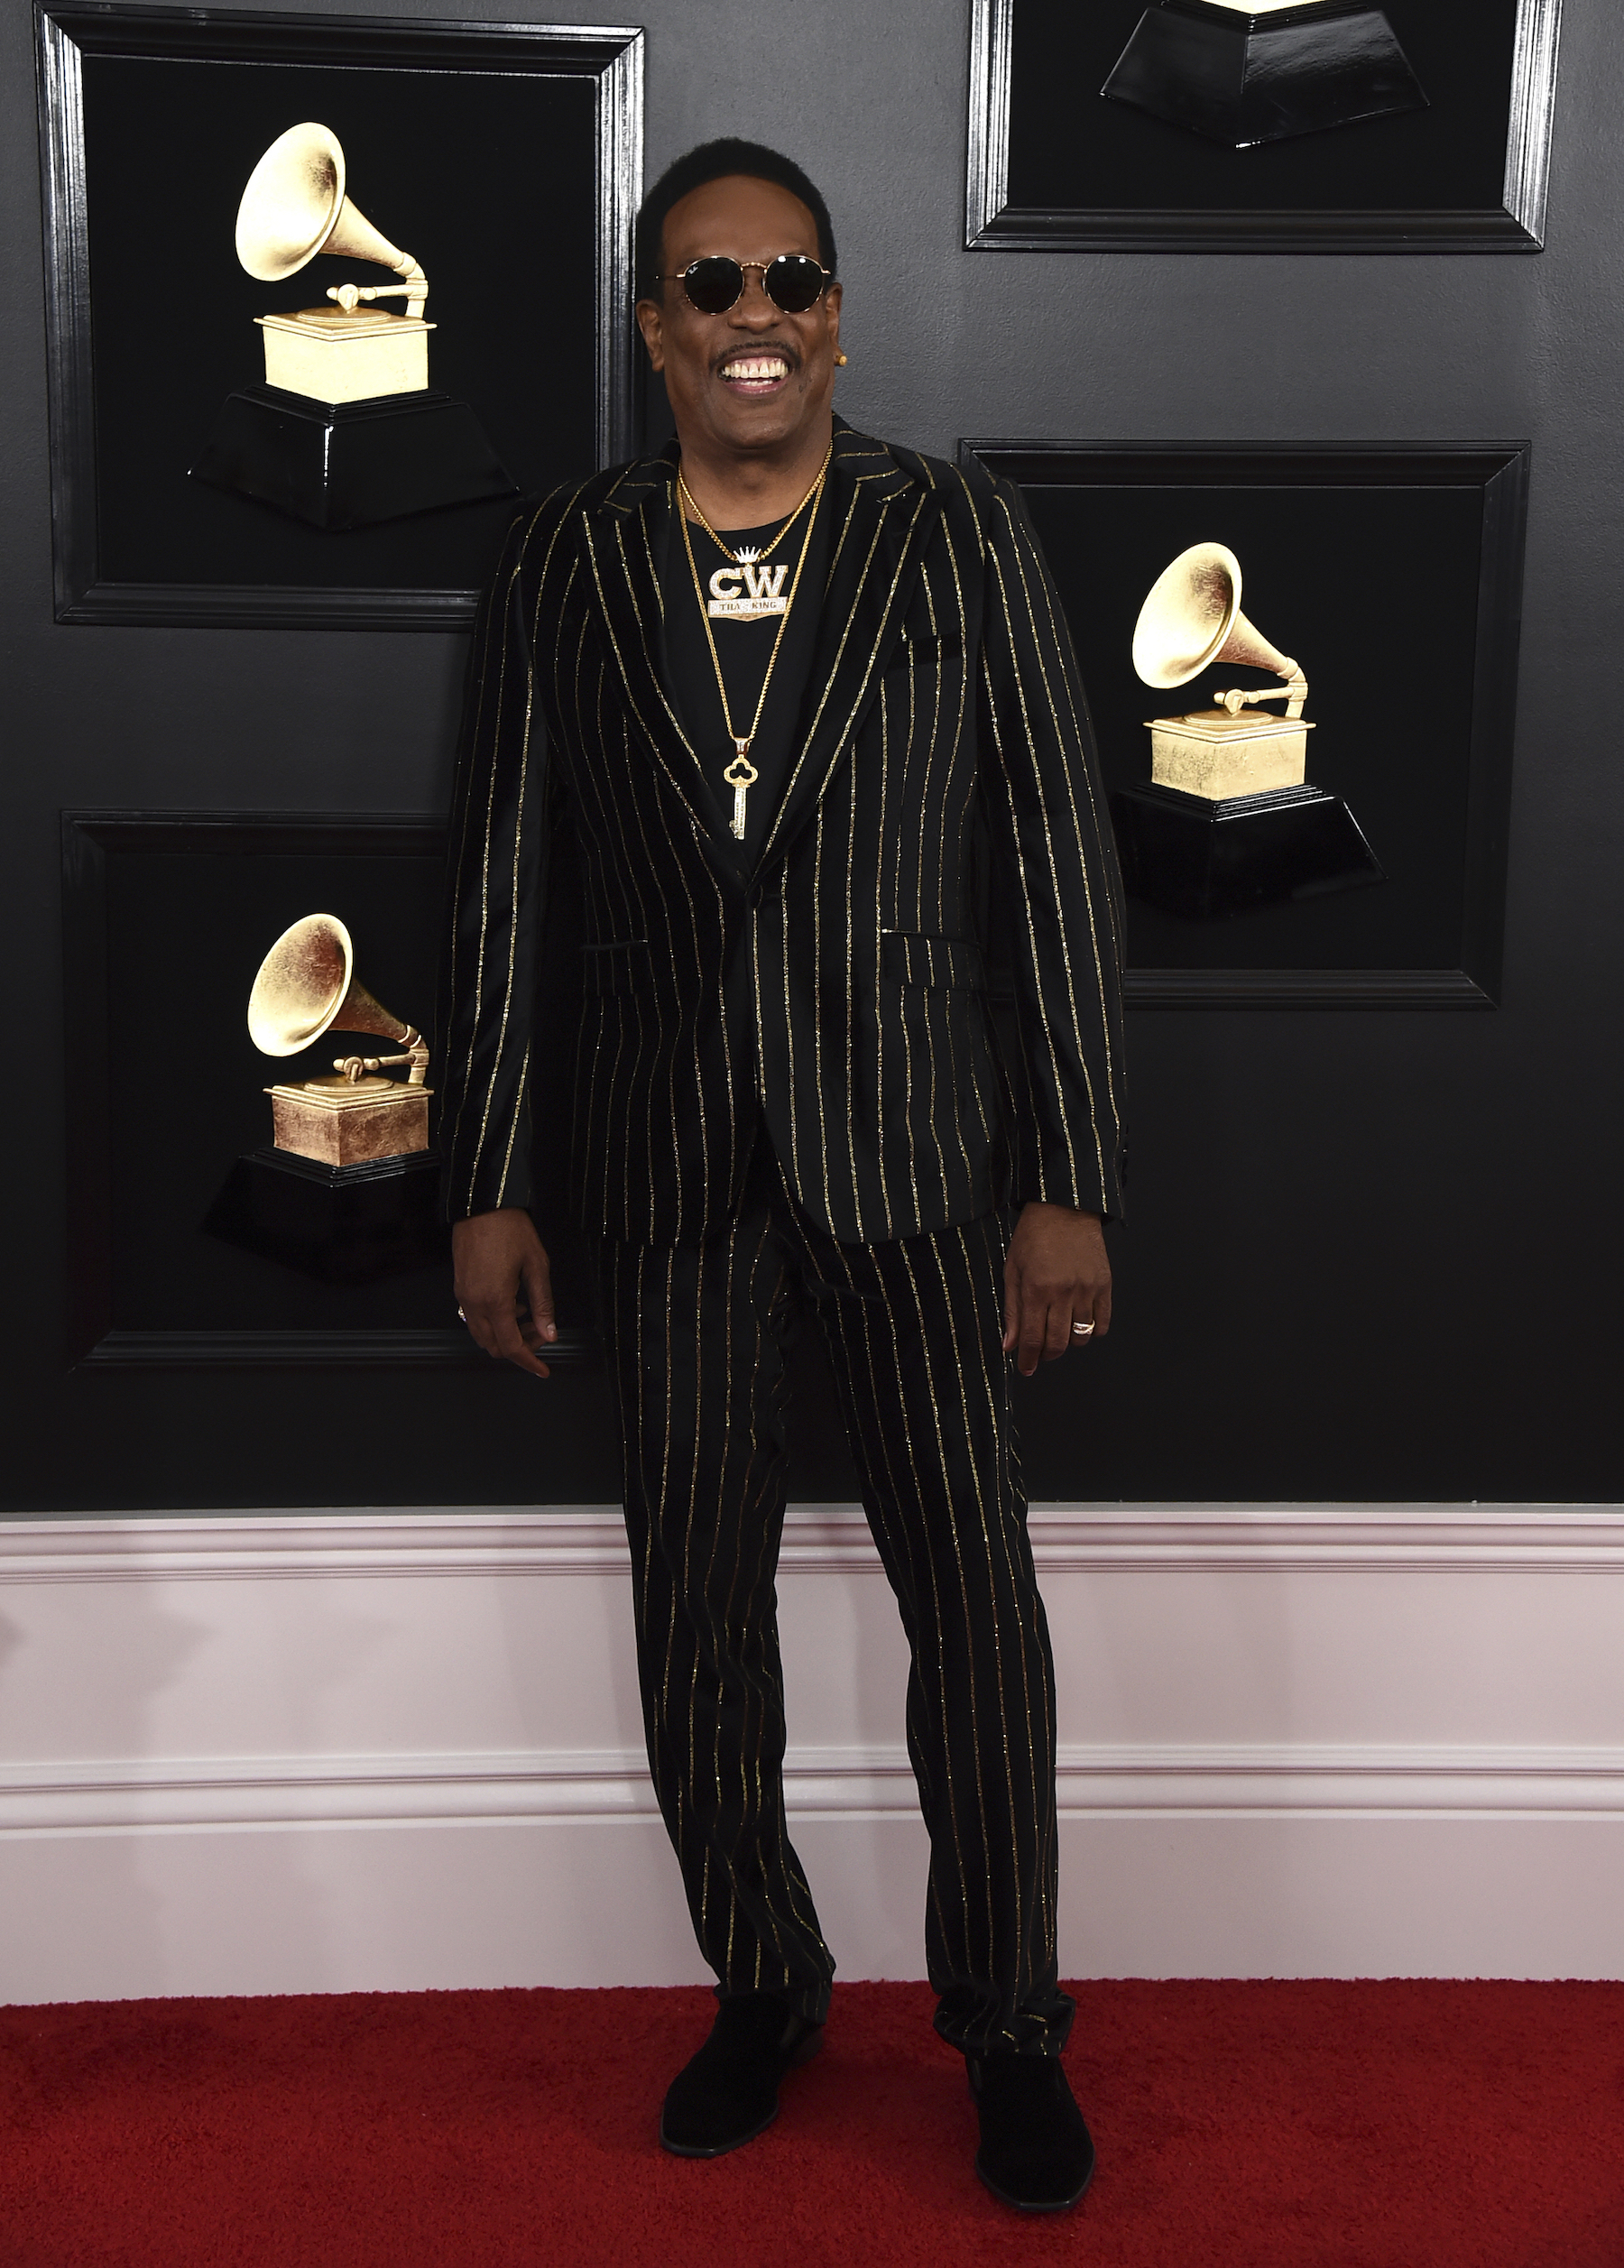 <div class='meta'><div class='origin-logo' data-origin='AP'></div><span class='caption-text' data-credit='Jordan Strauss/Invision/AP'>Charlie Wilson arrives at the 61st annual Grammy Awards at the Staples Center on Sunday, Feb. 10, 2019, in Los Angeles.</span></div>